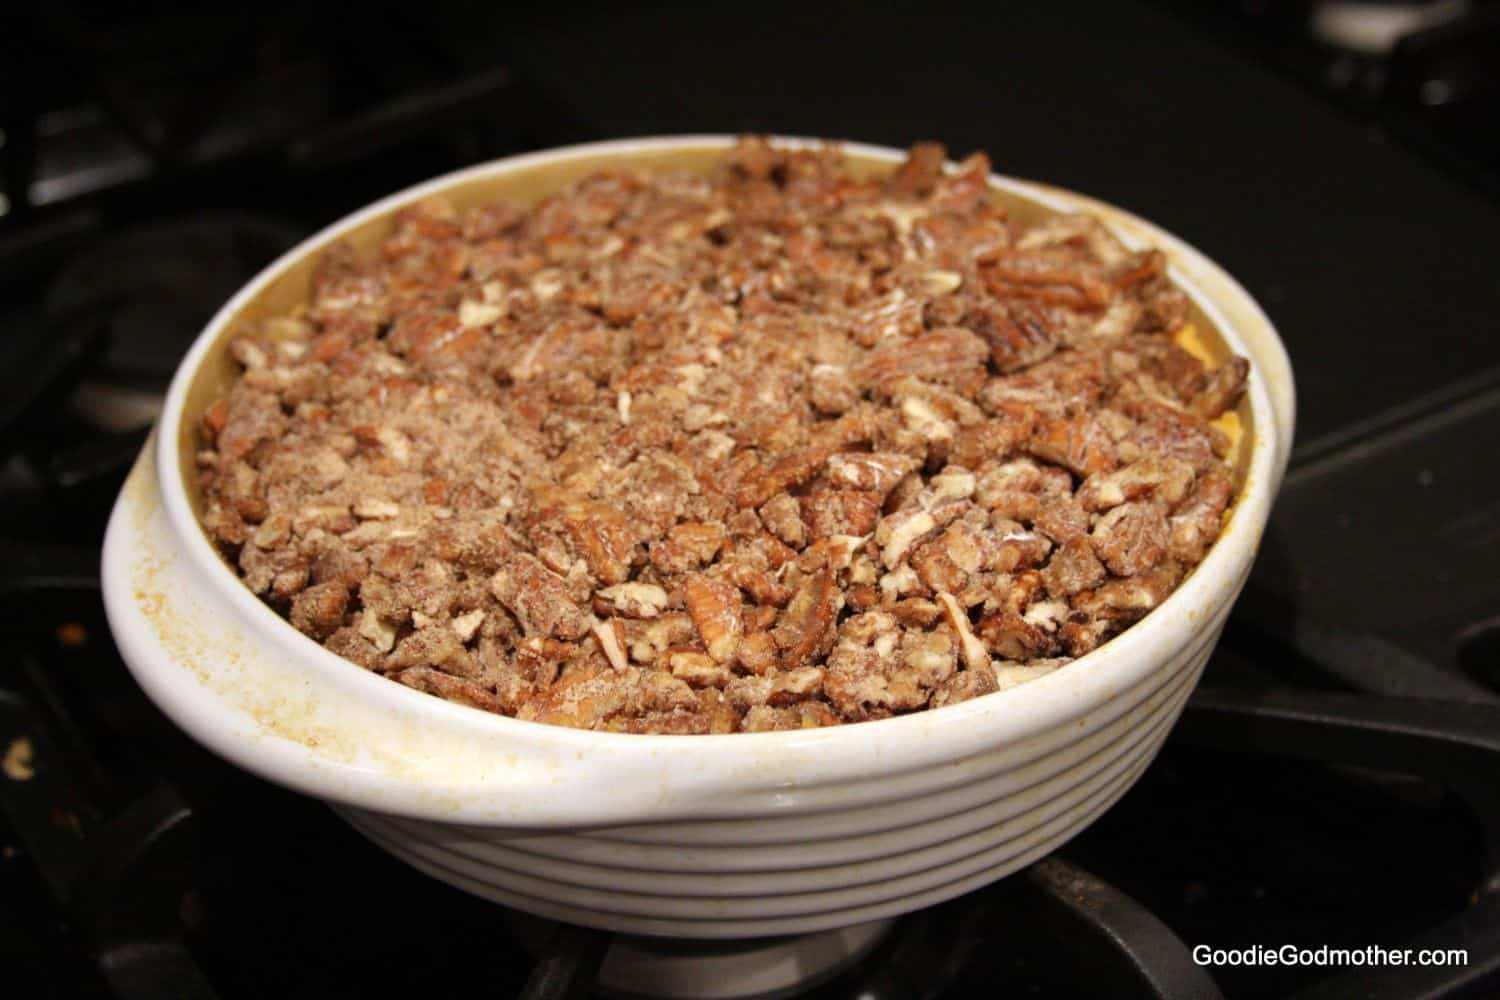 Not Too Sweet Sweet Potato Casserole With Pecans Goodie Godmother